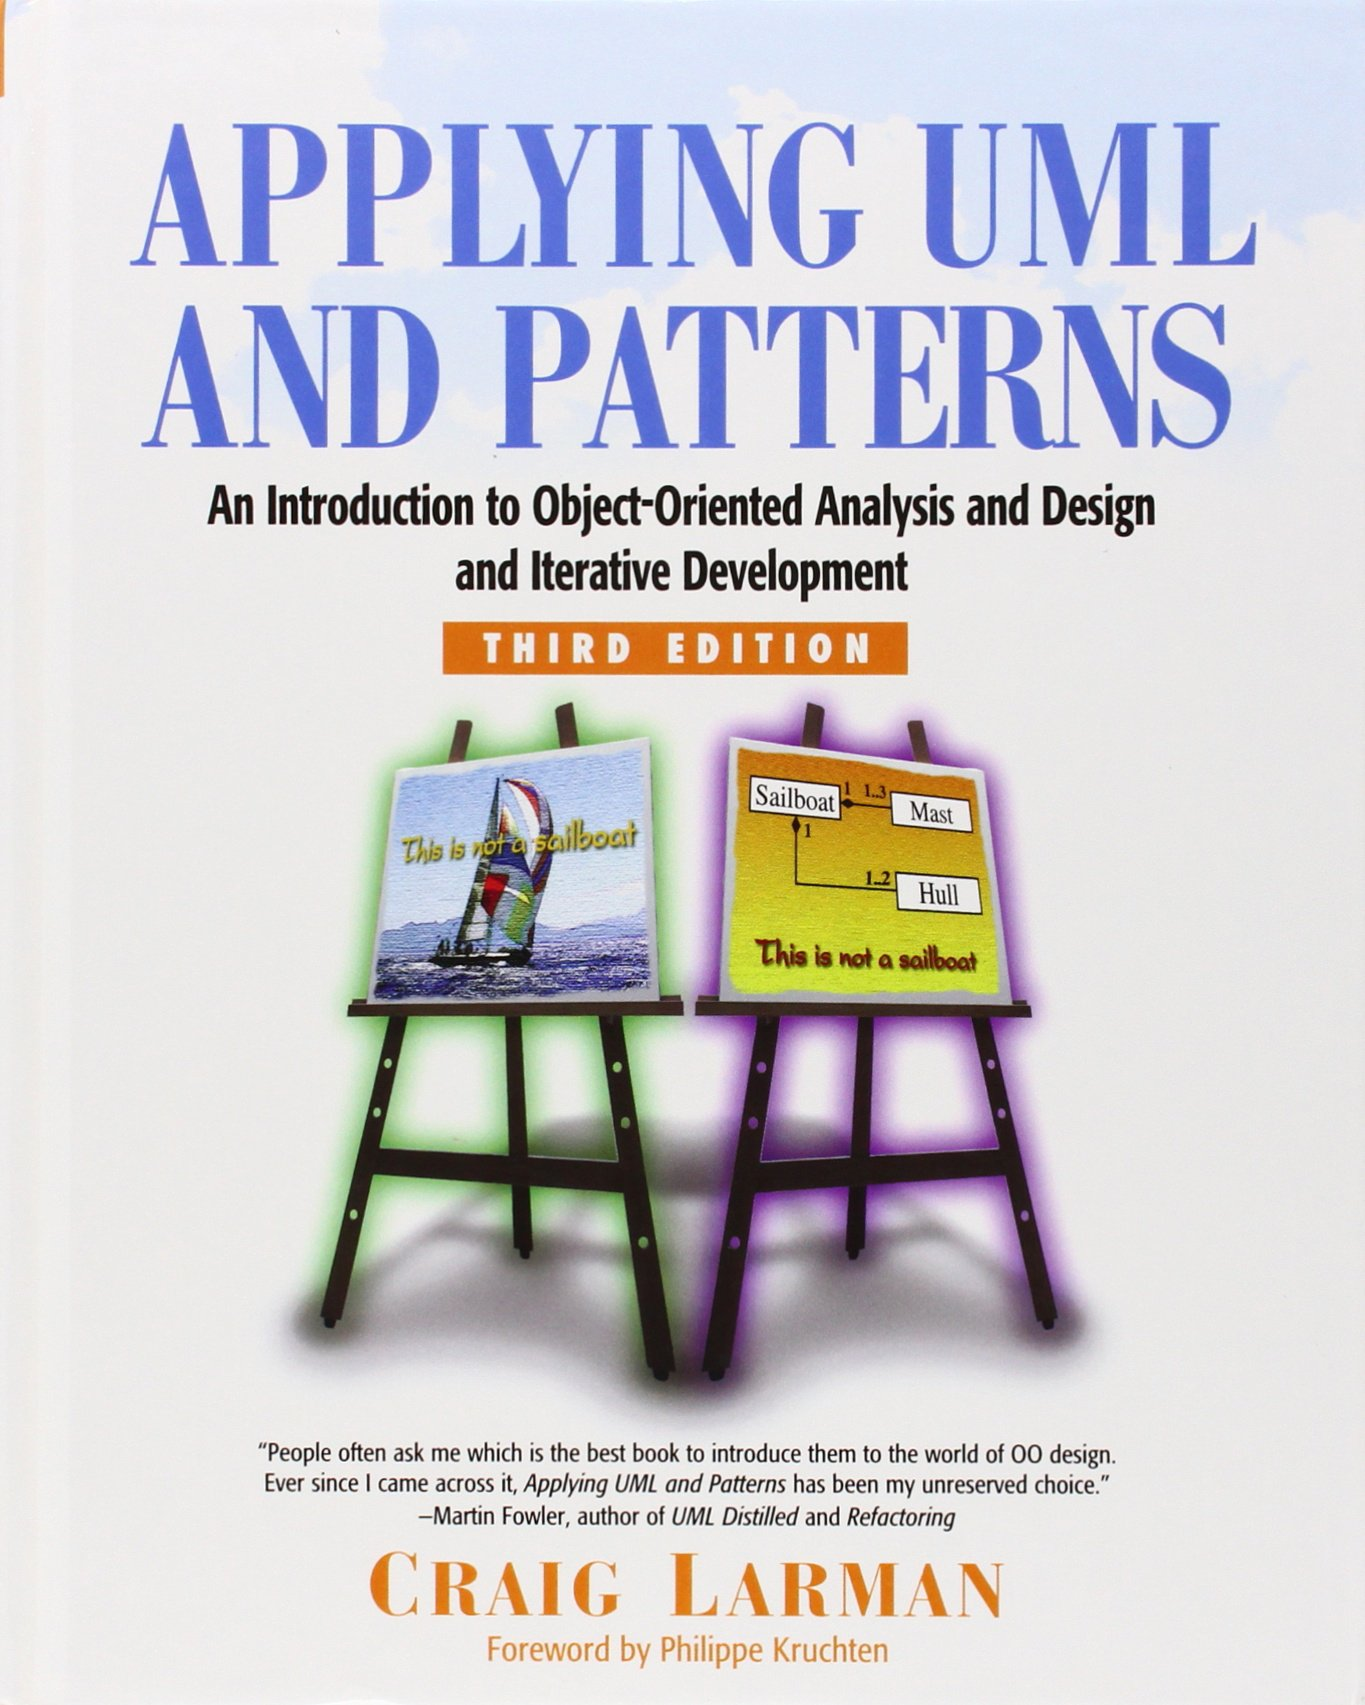 My recommended list of best UML books - Modeling Languages